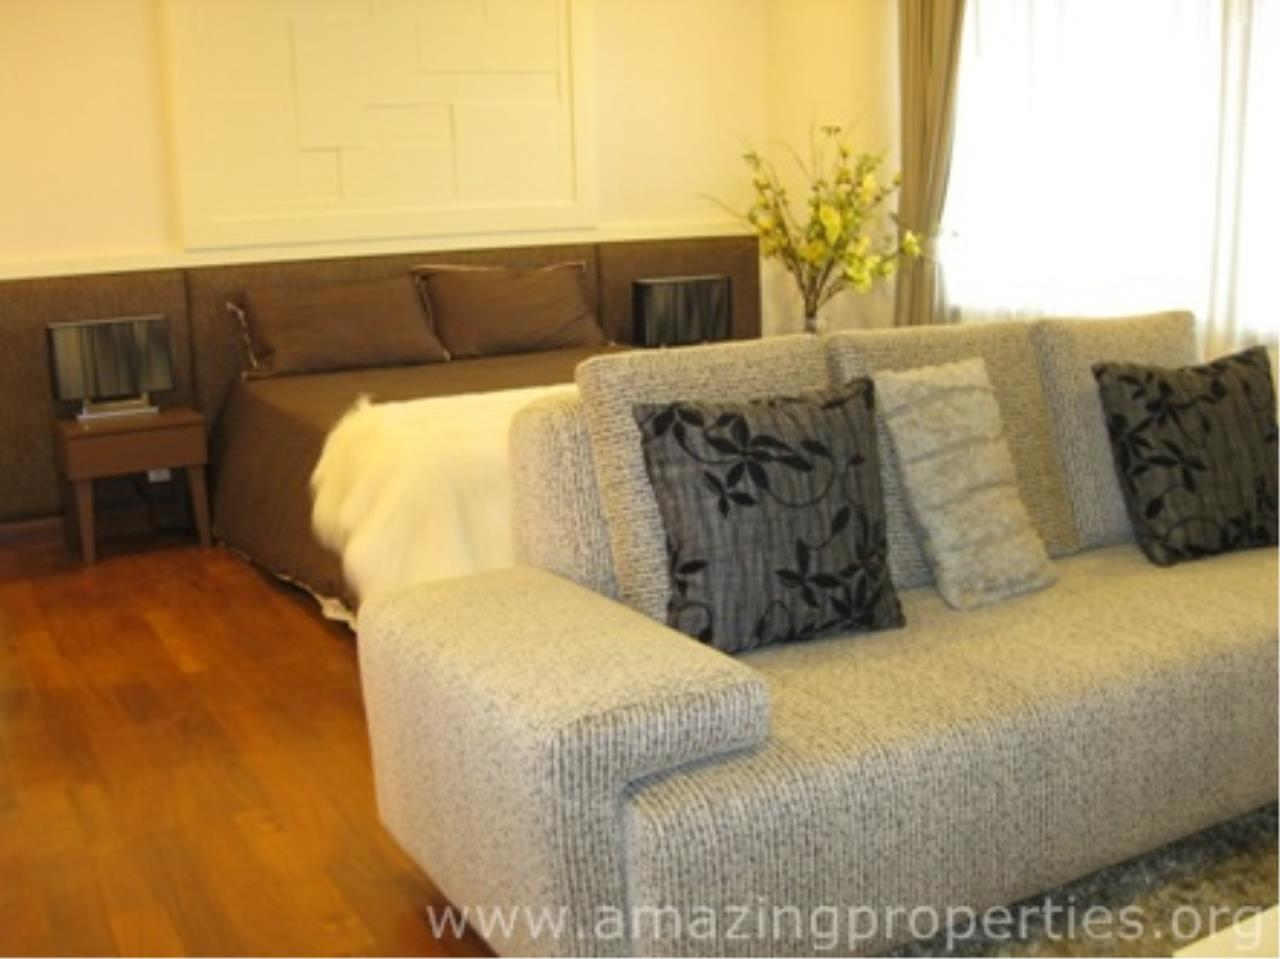 Amazing Properties Agency's 3 bedrooms Apartment for rent/sale 9